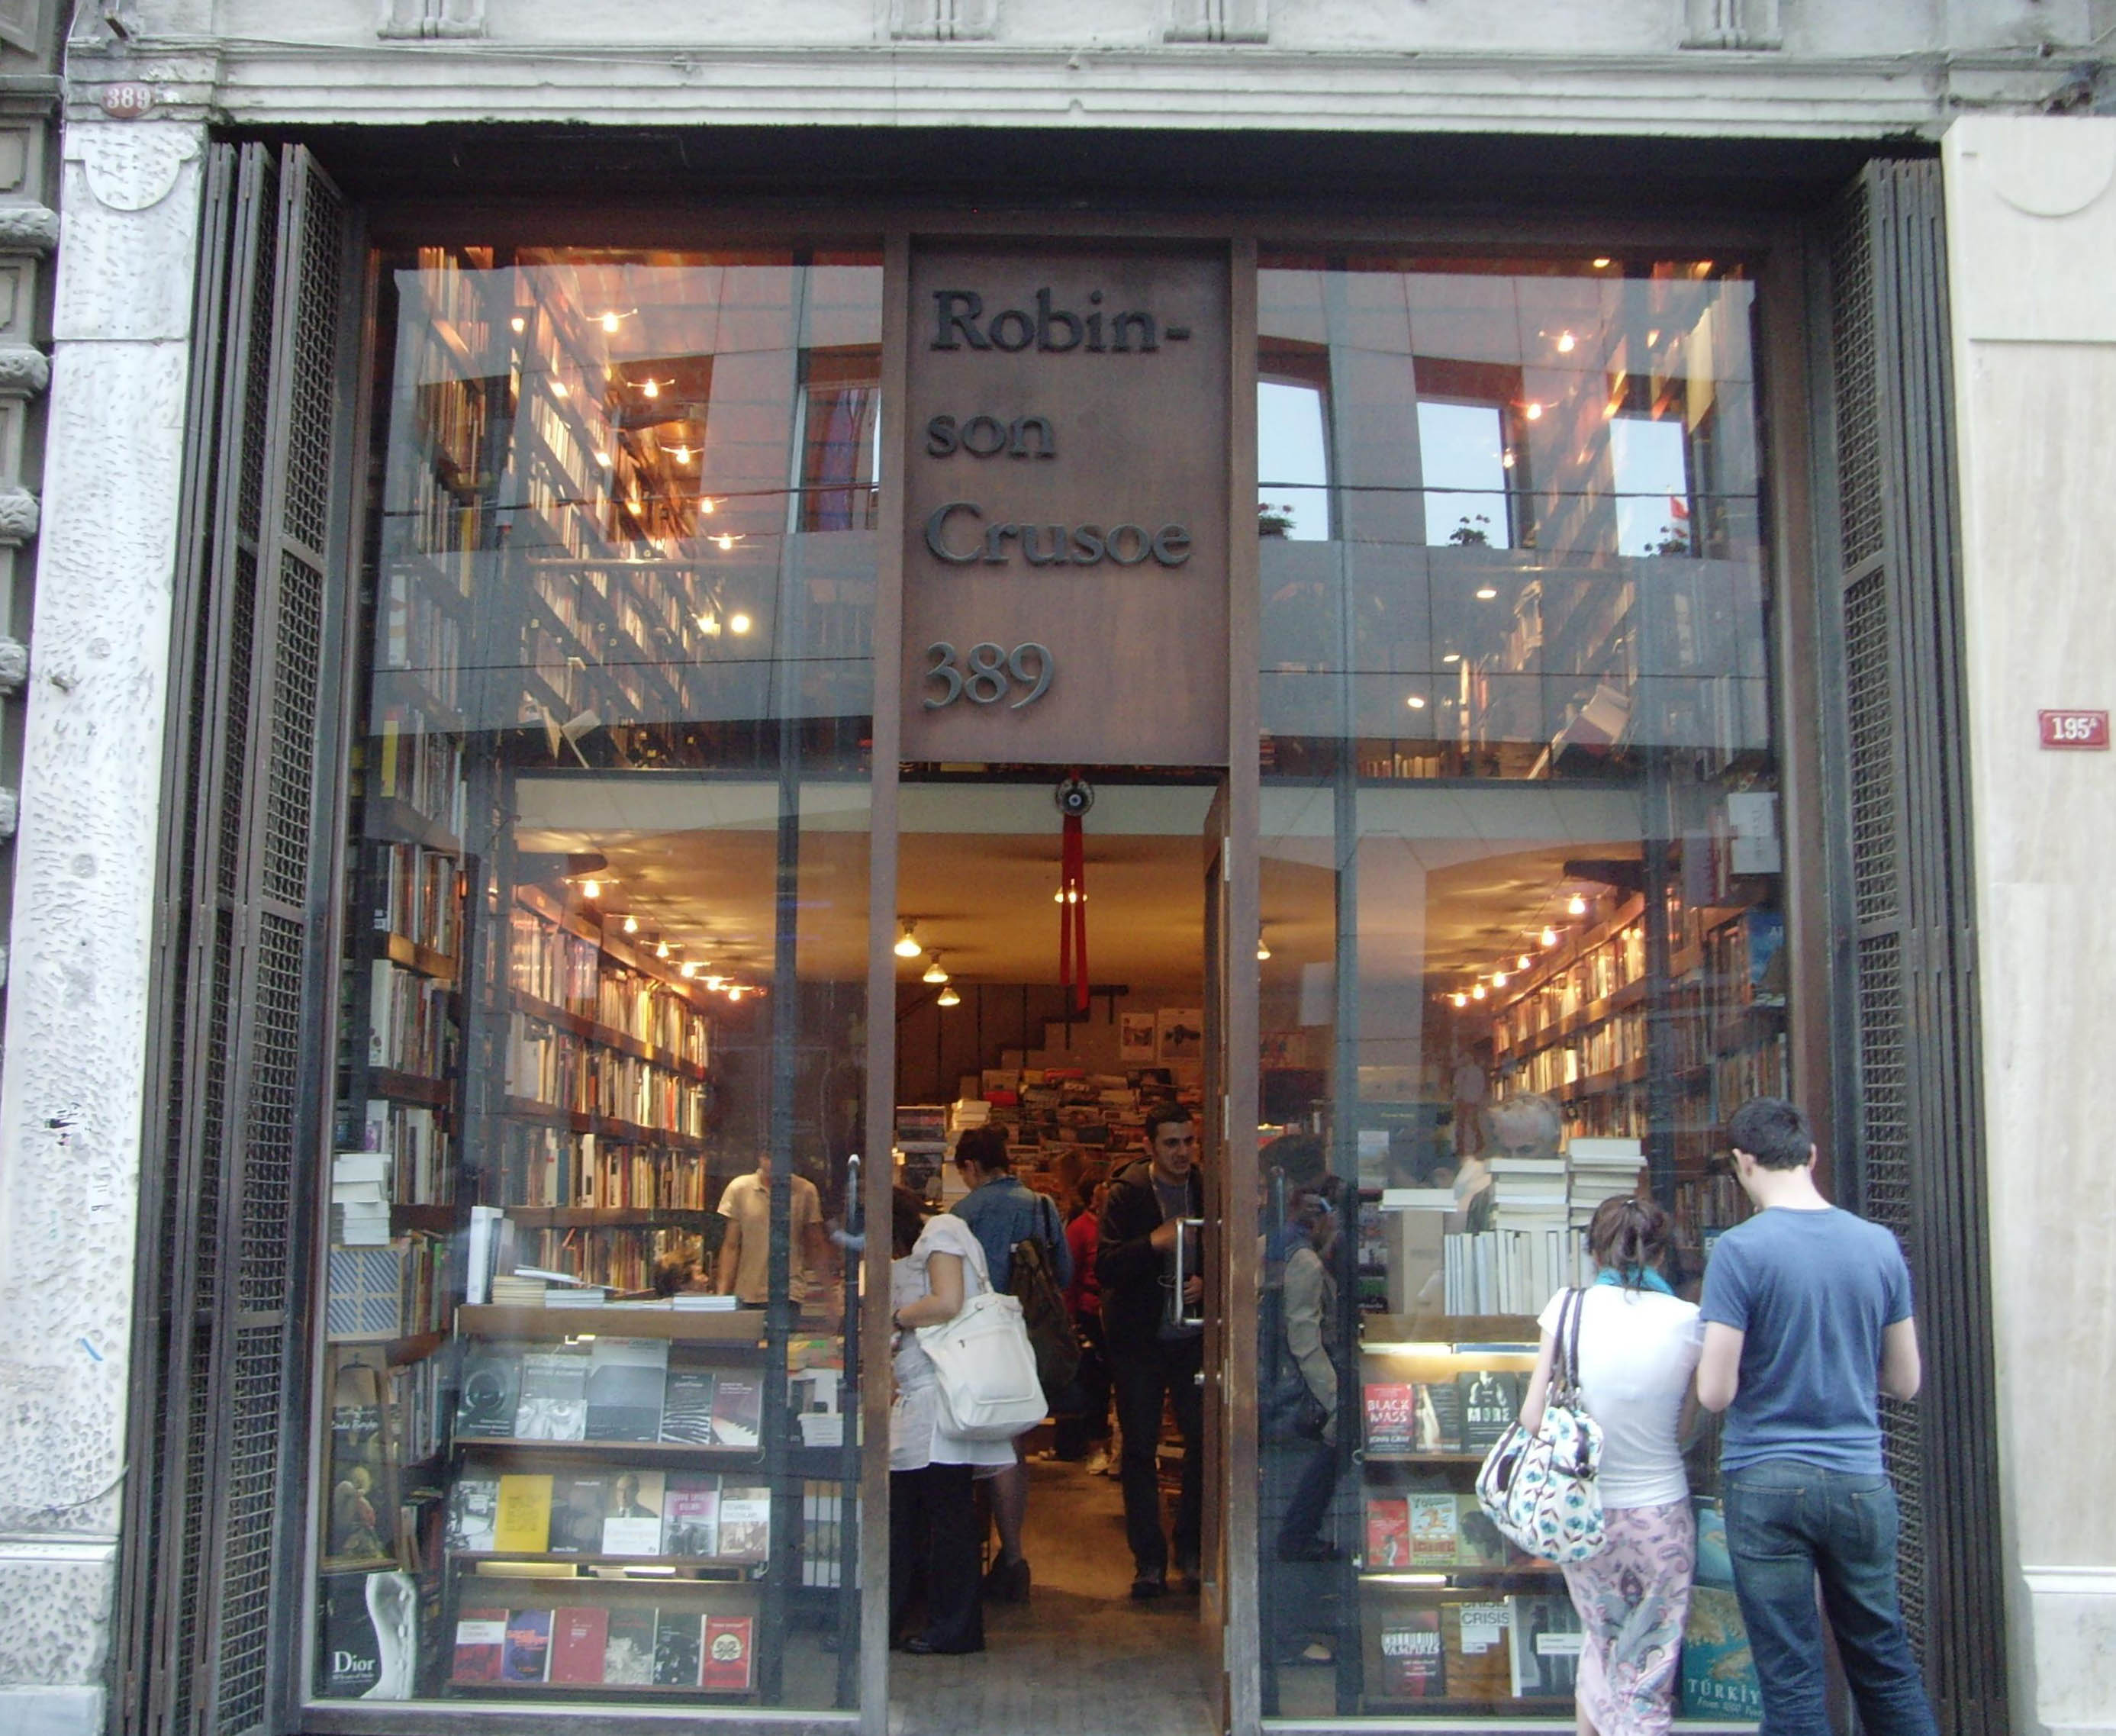 Robinson Crusoe Bookstore on İstiklal Avenue, Istanbul, Turkey. Photo by <a href=